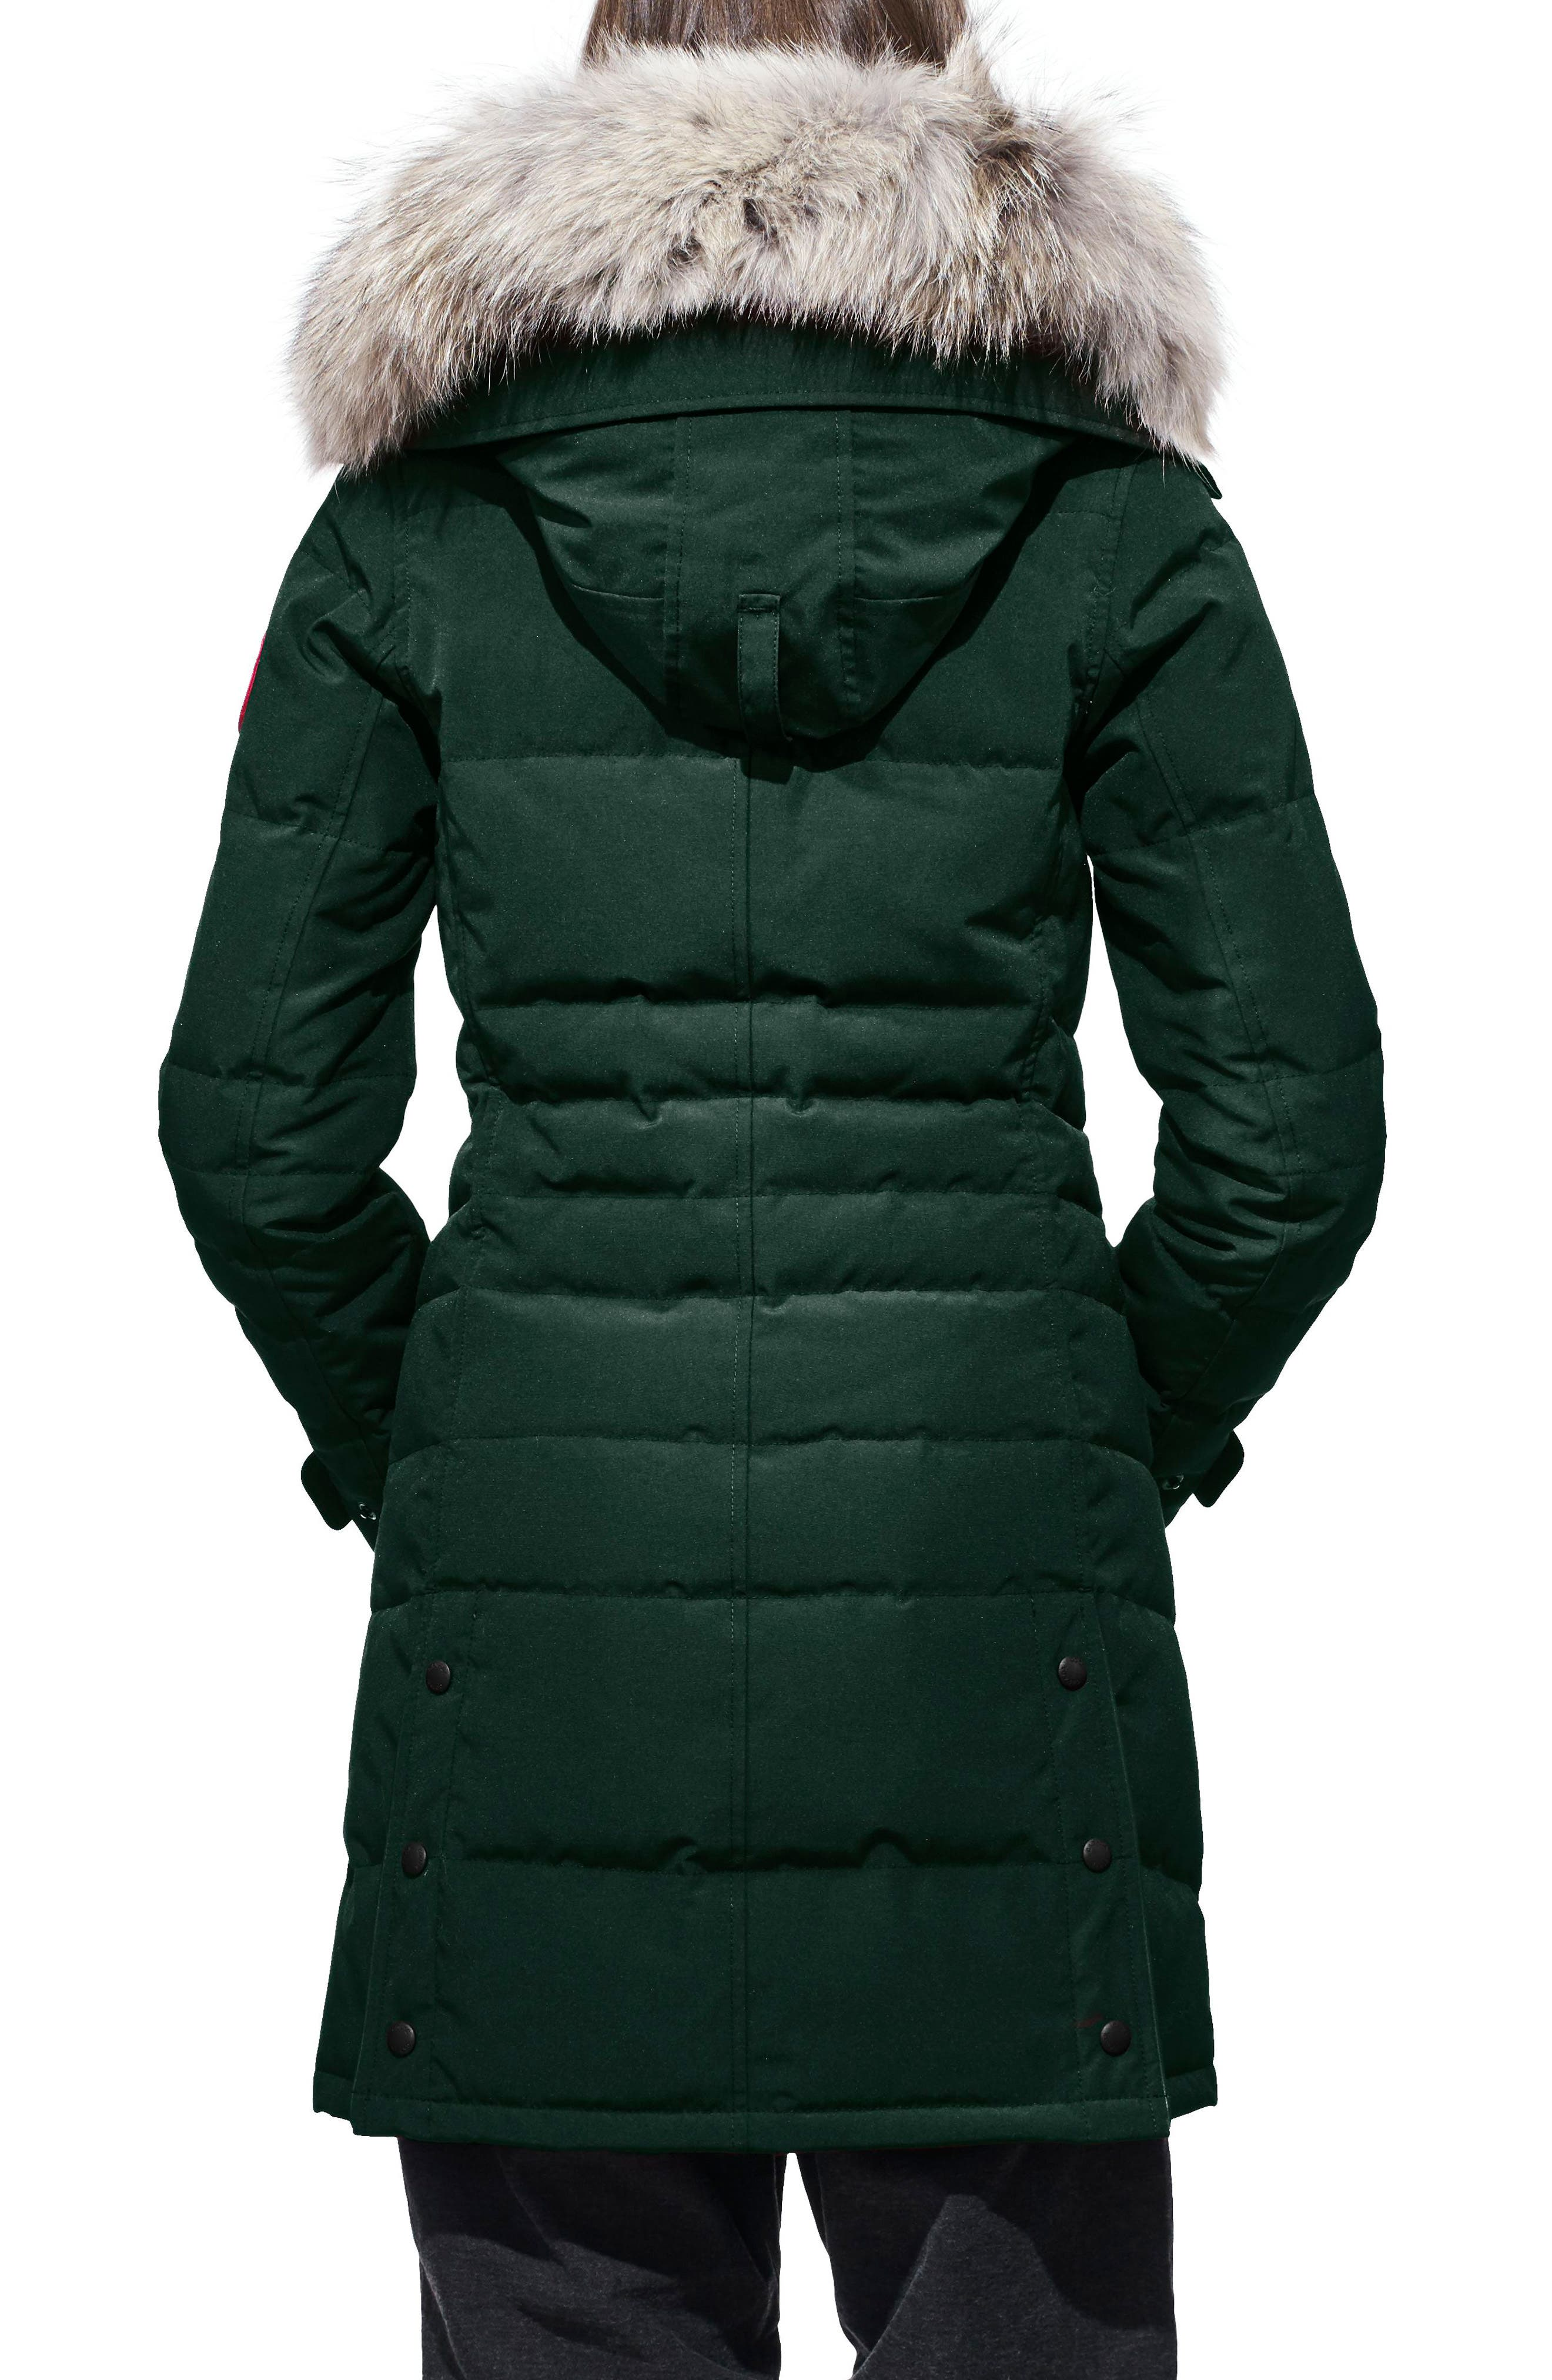 'Lorette' Hooded Down Parka with Genuine Coyote Fur Trim,                             Alternate thumbnail 2, color,                             026